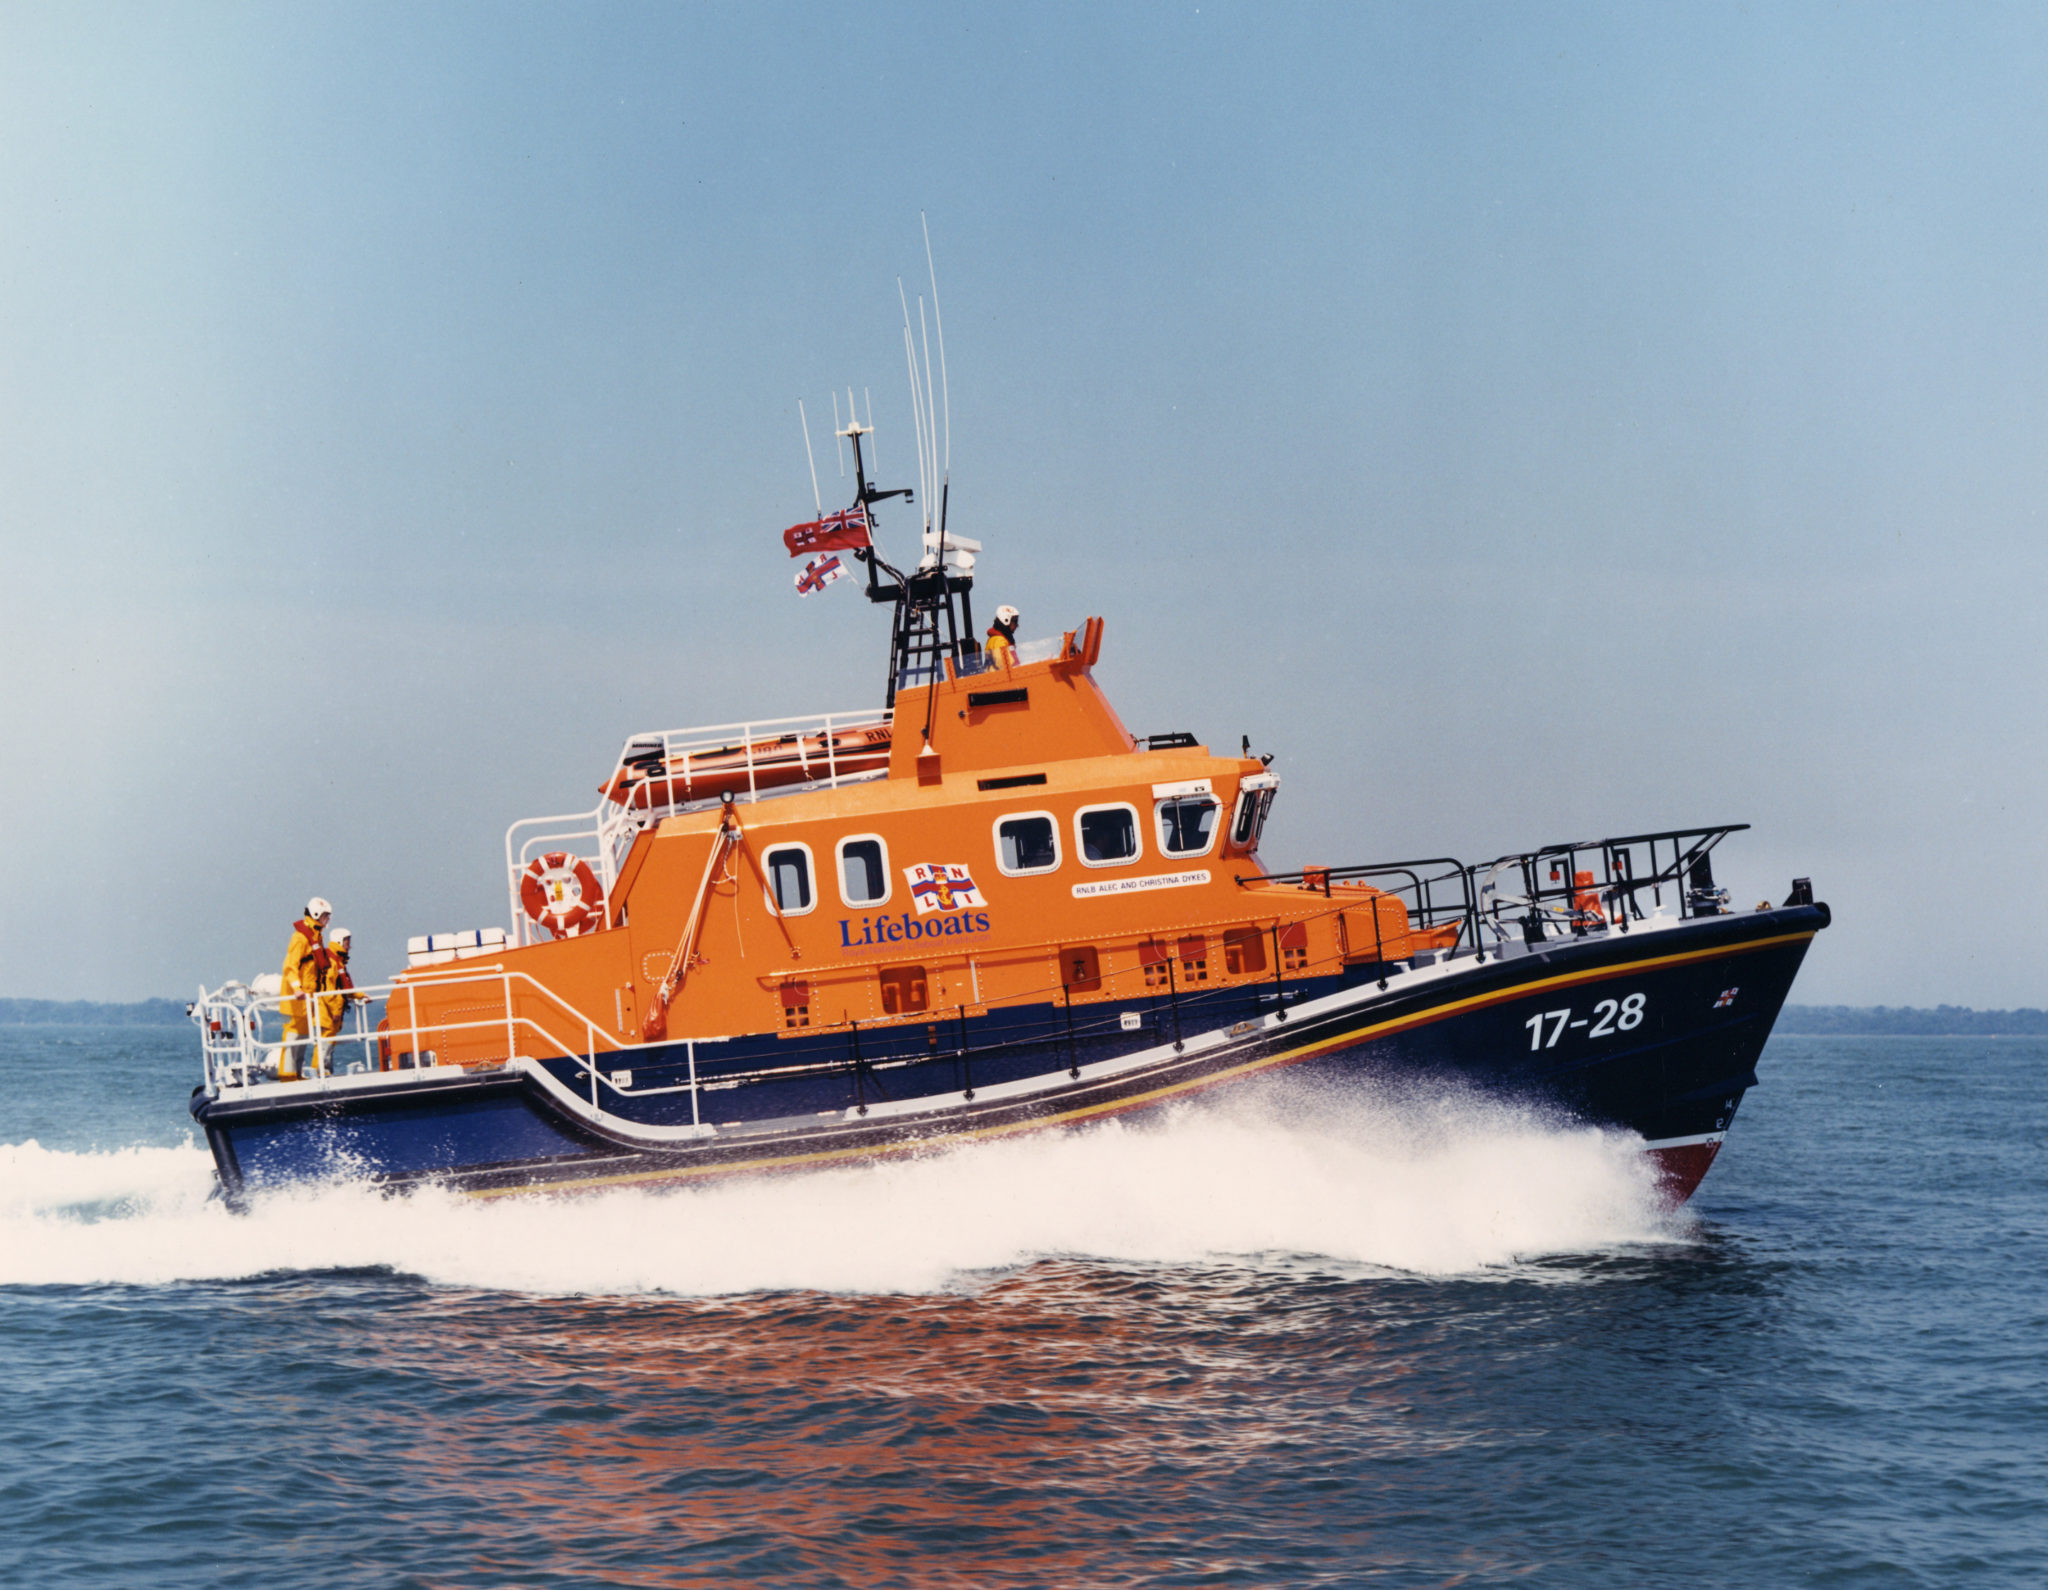 torbay_rnli_lifeboat_crew_to_rescue_ferry_passengers_off_brixham (1)